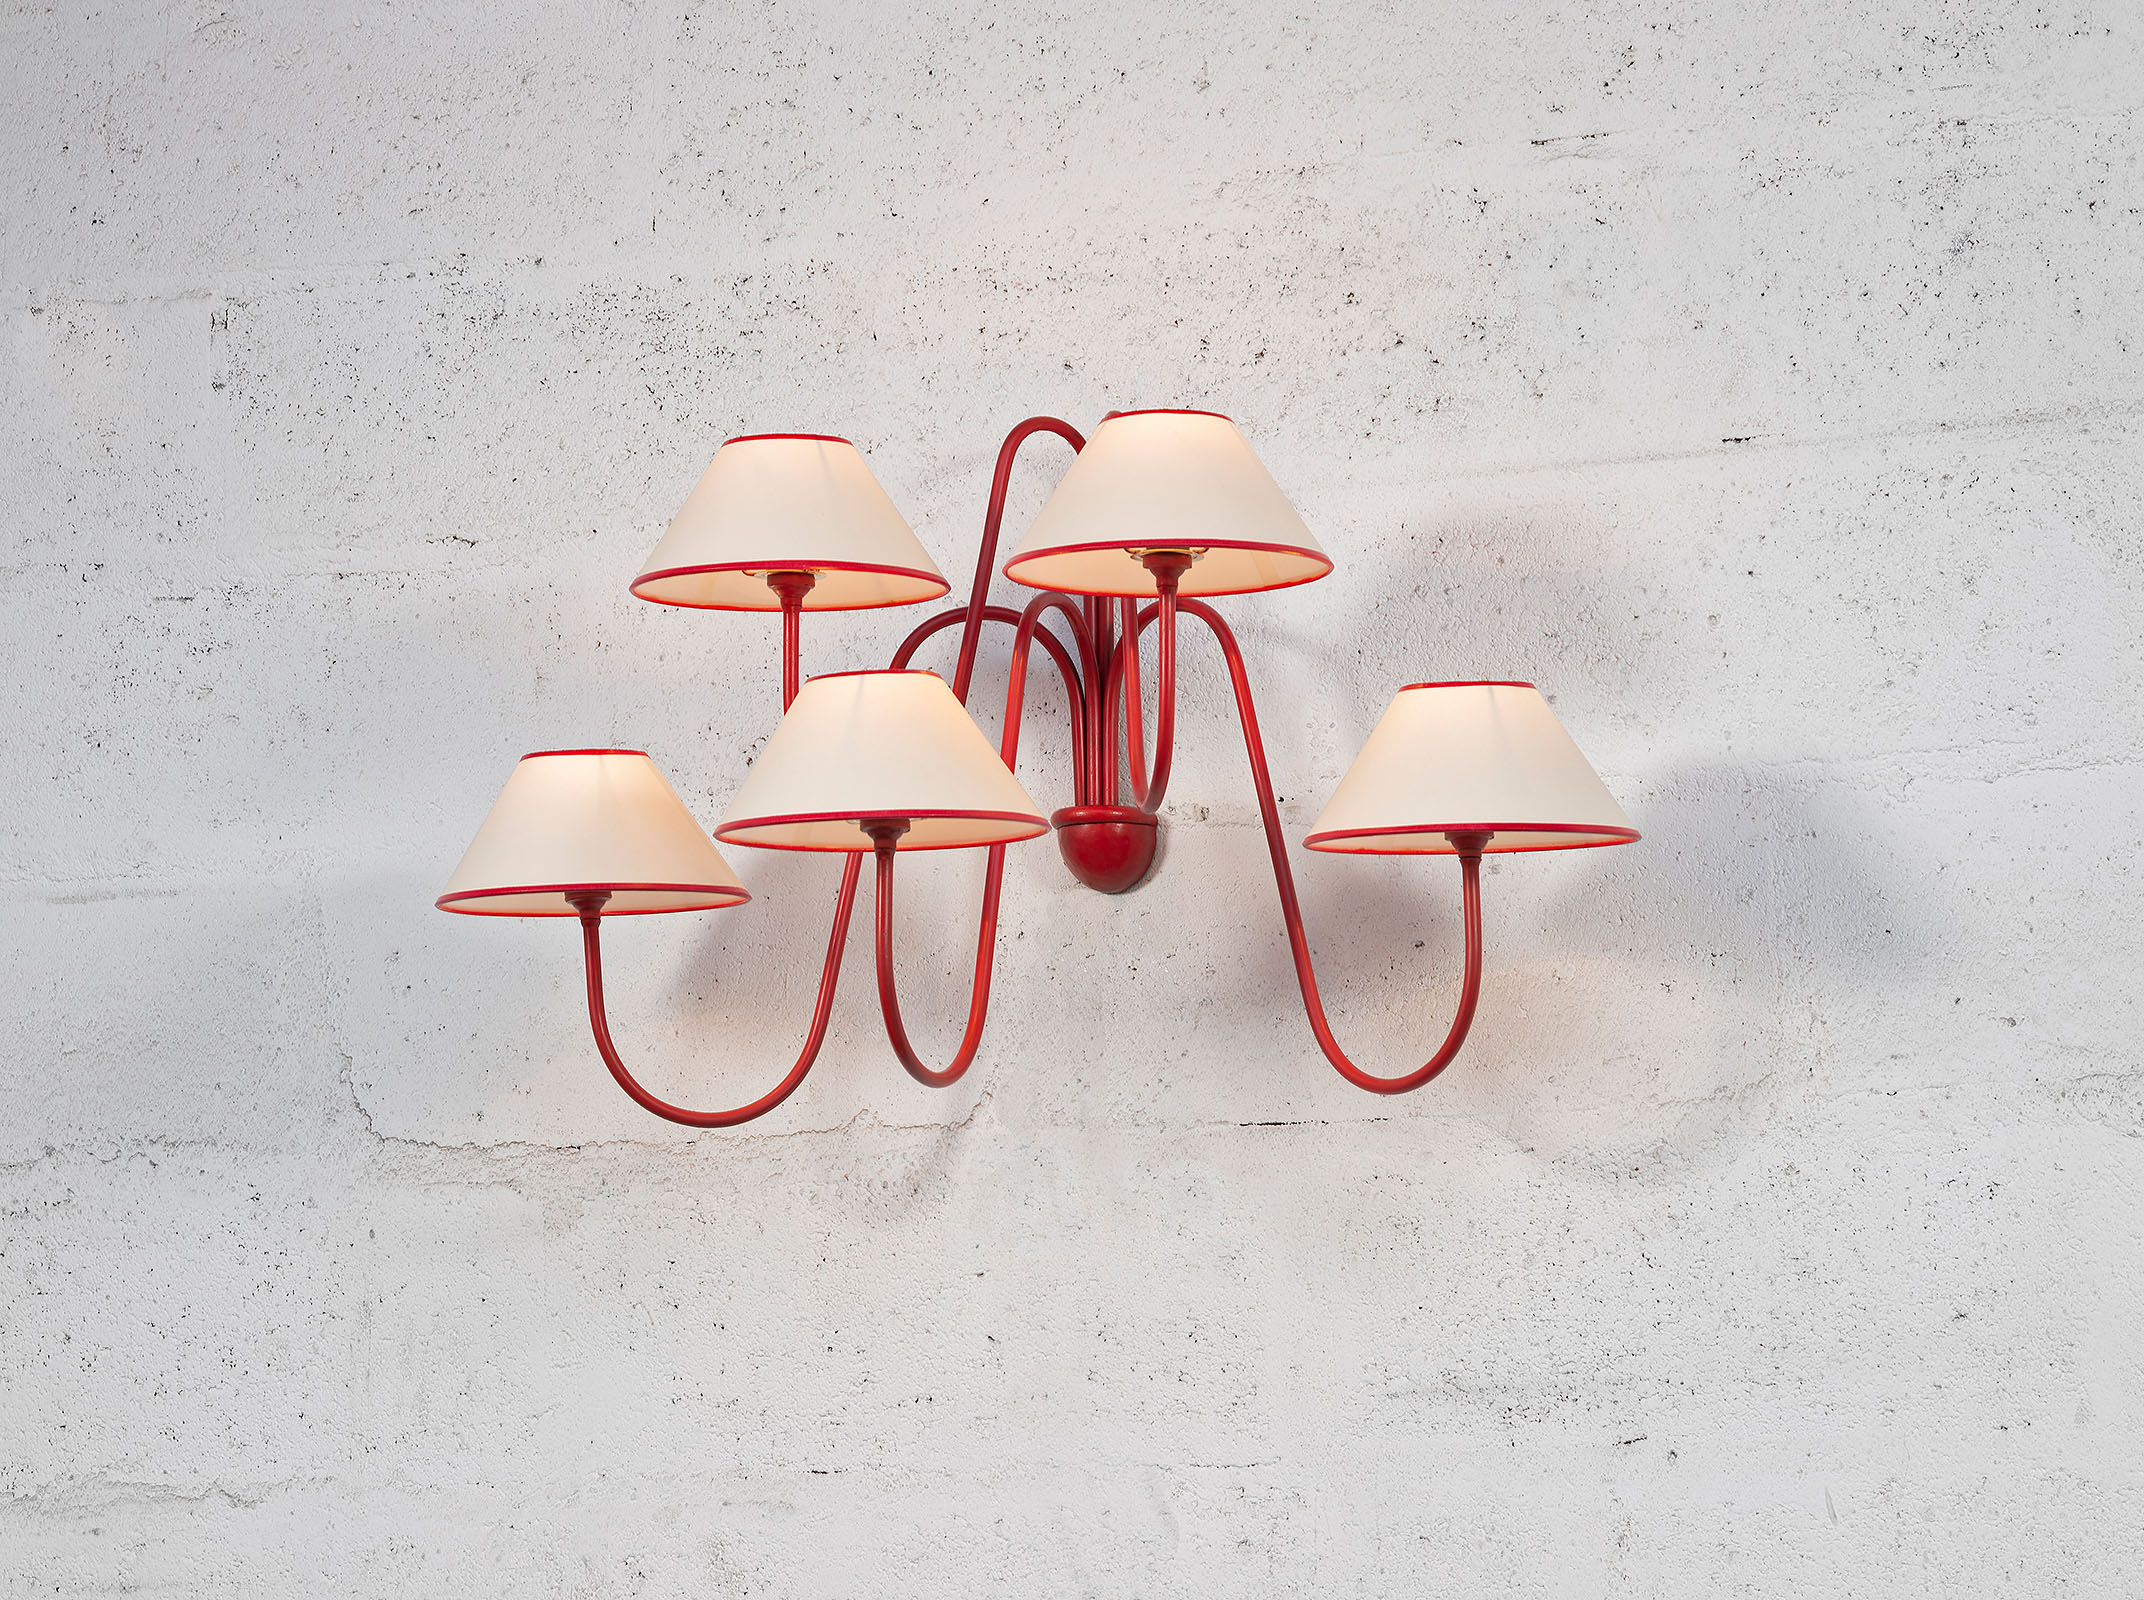 Jean Royère, Pair of 'Bouquet' wall-lights (sold), vue 02